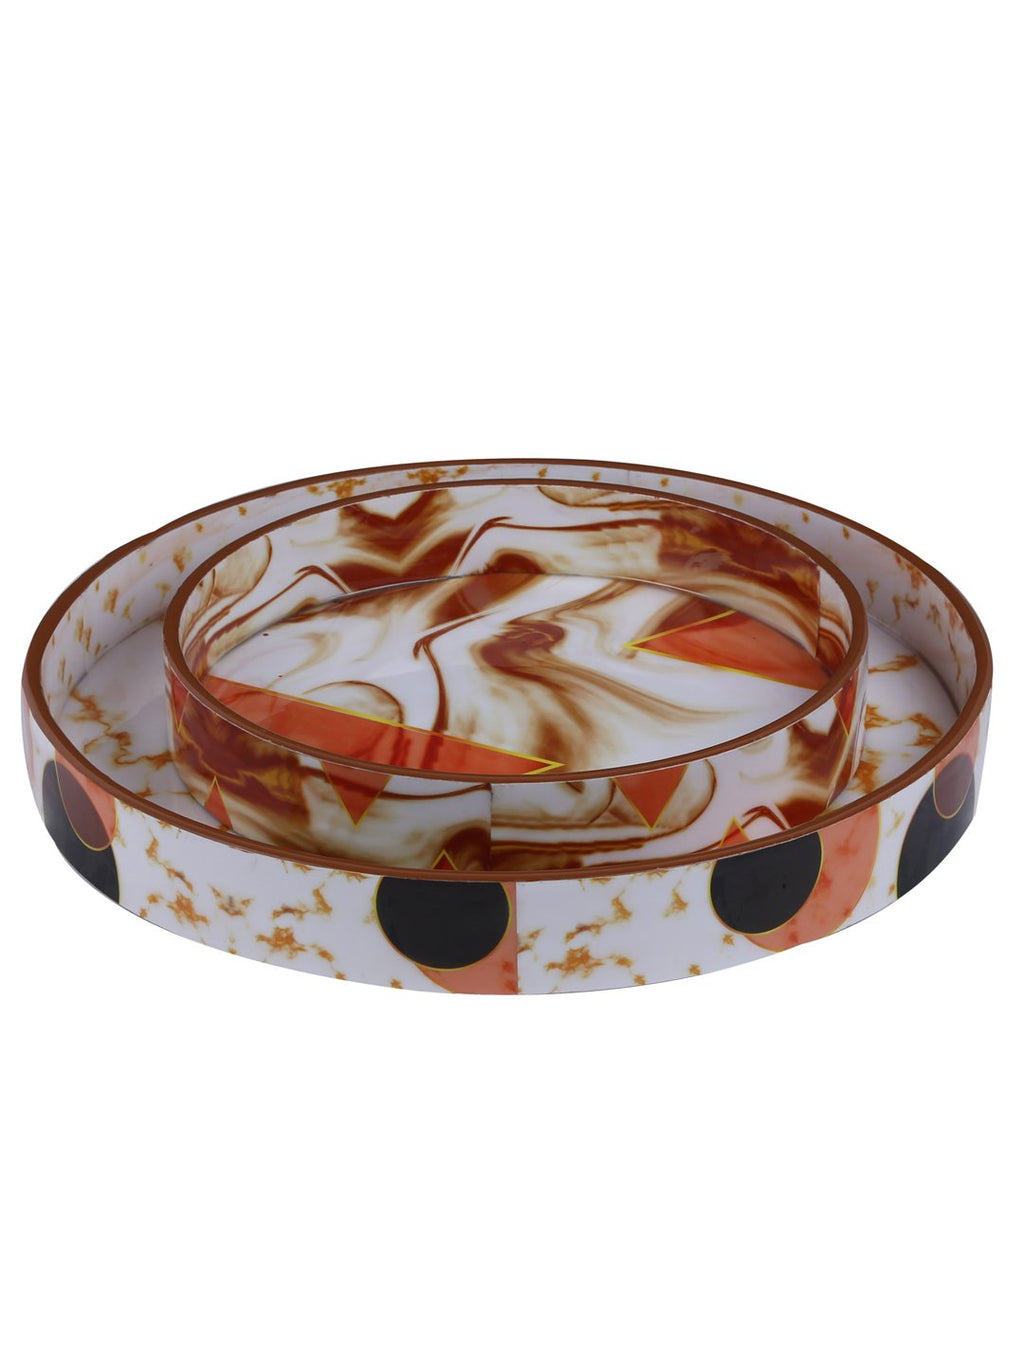 Handcrafted Marble Magic Circular Wooden Trays - Set Of 2